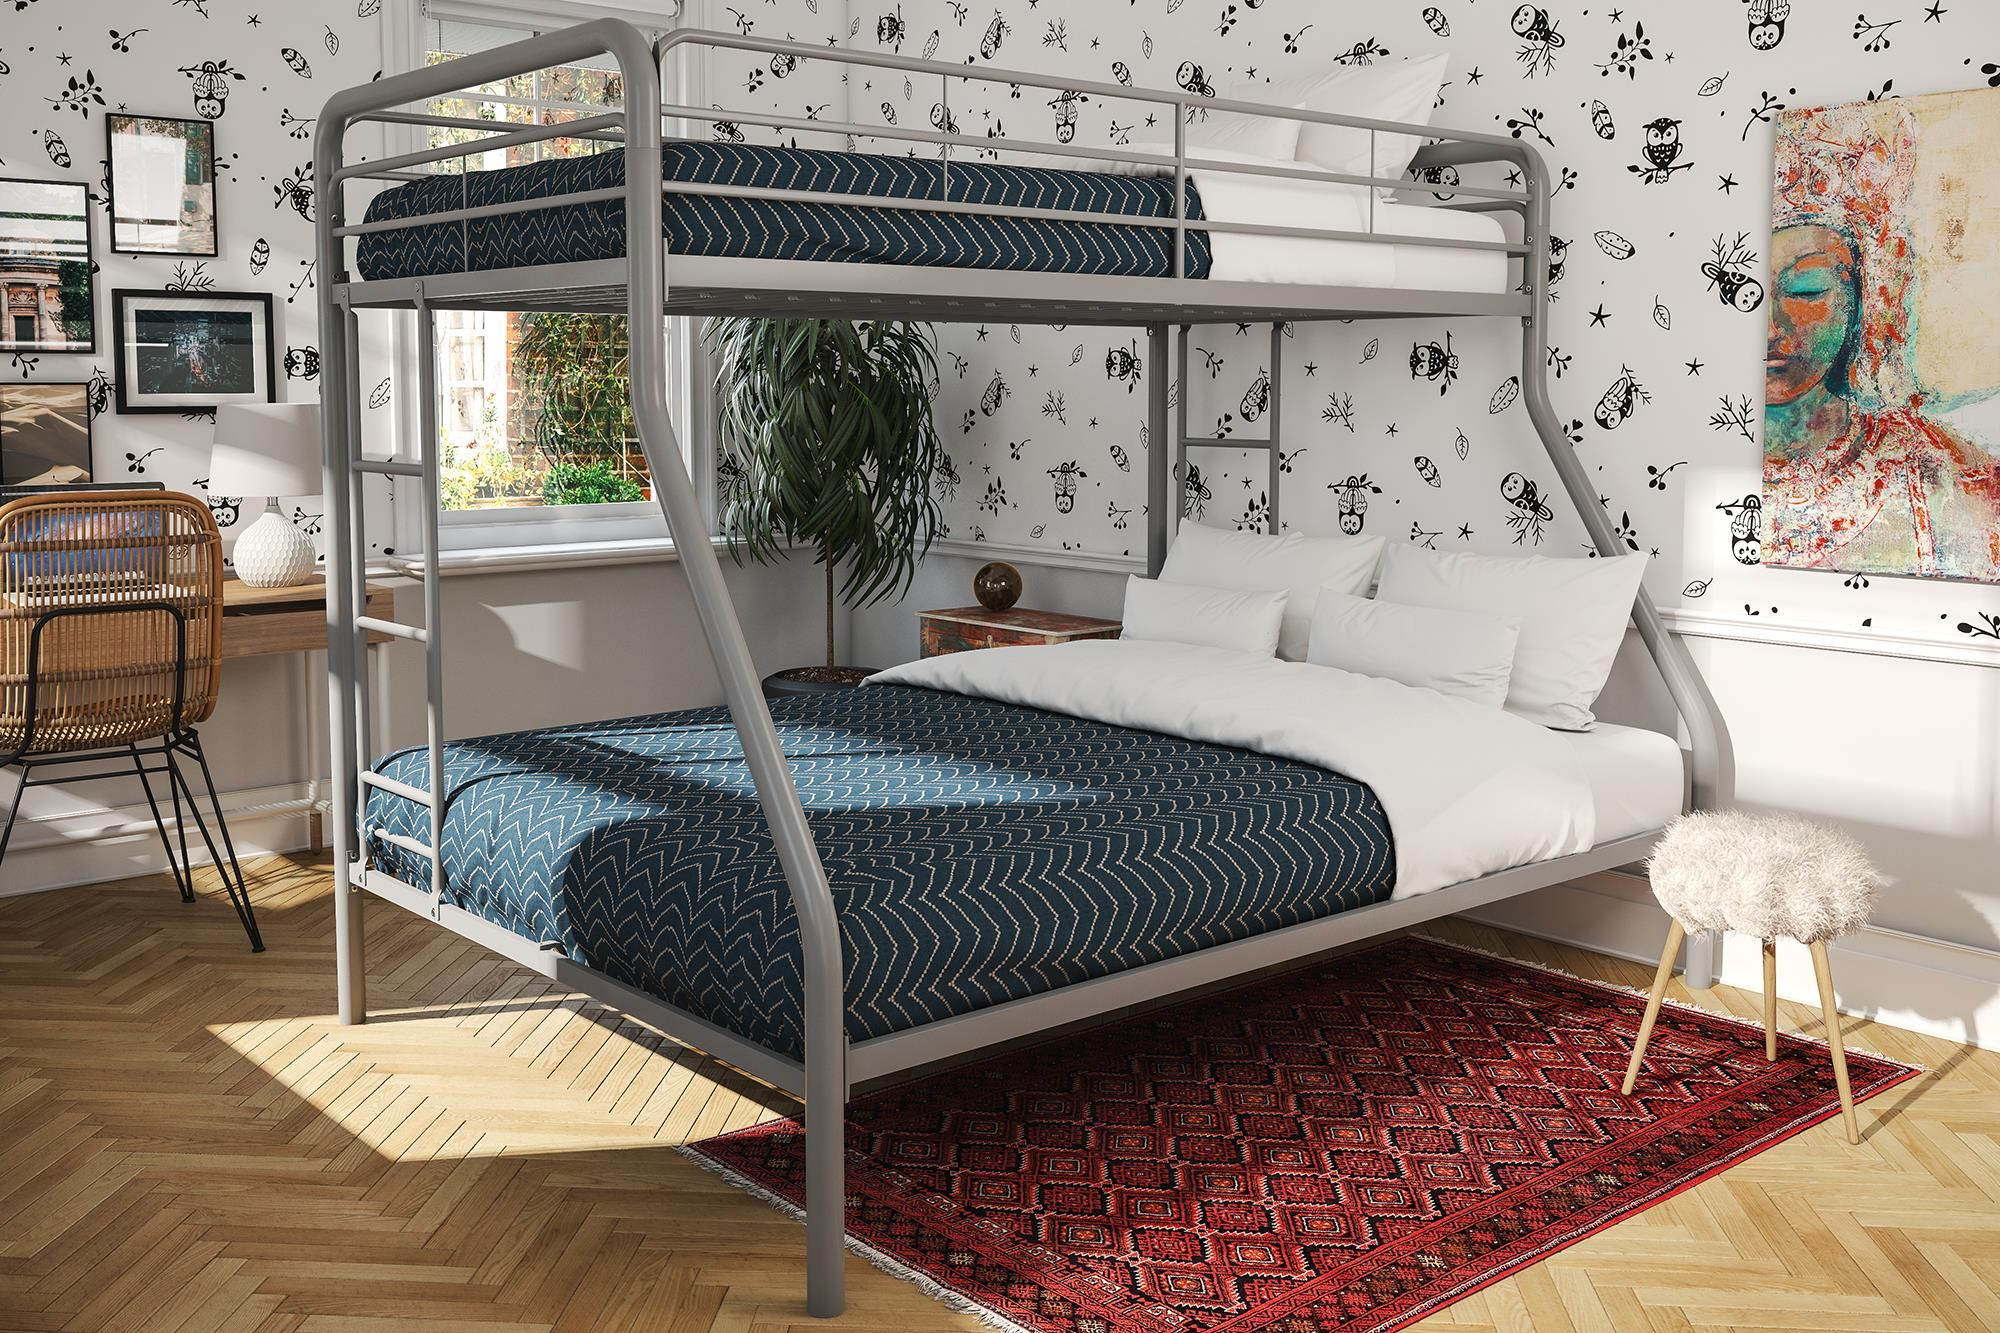 Home Metal bunk beds, Bunk beds with stairs, Bunk beds